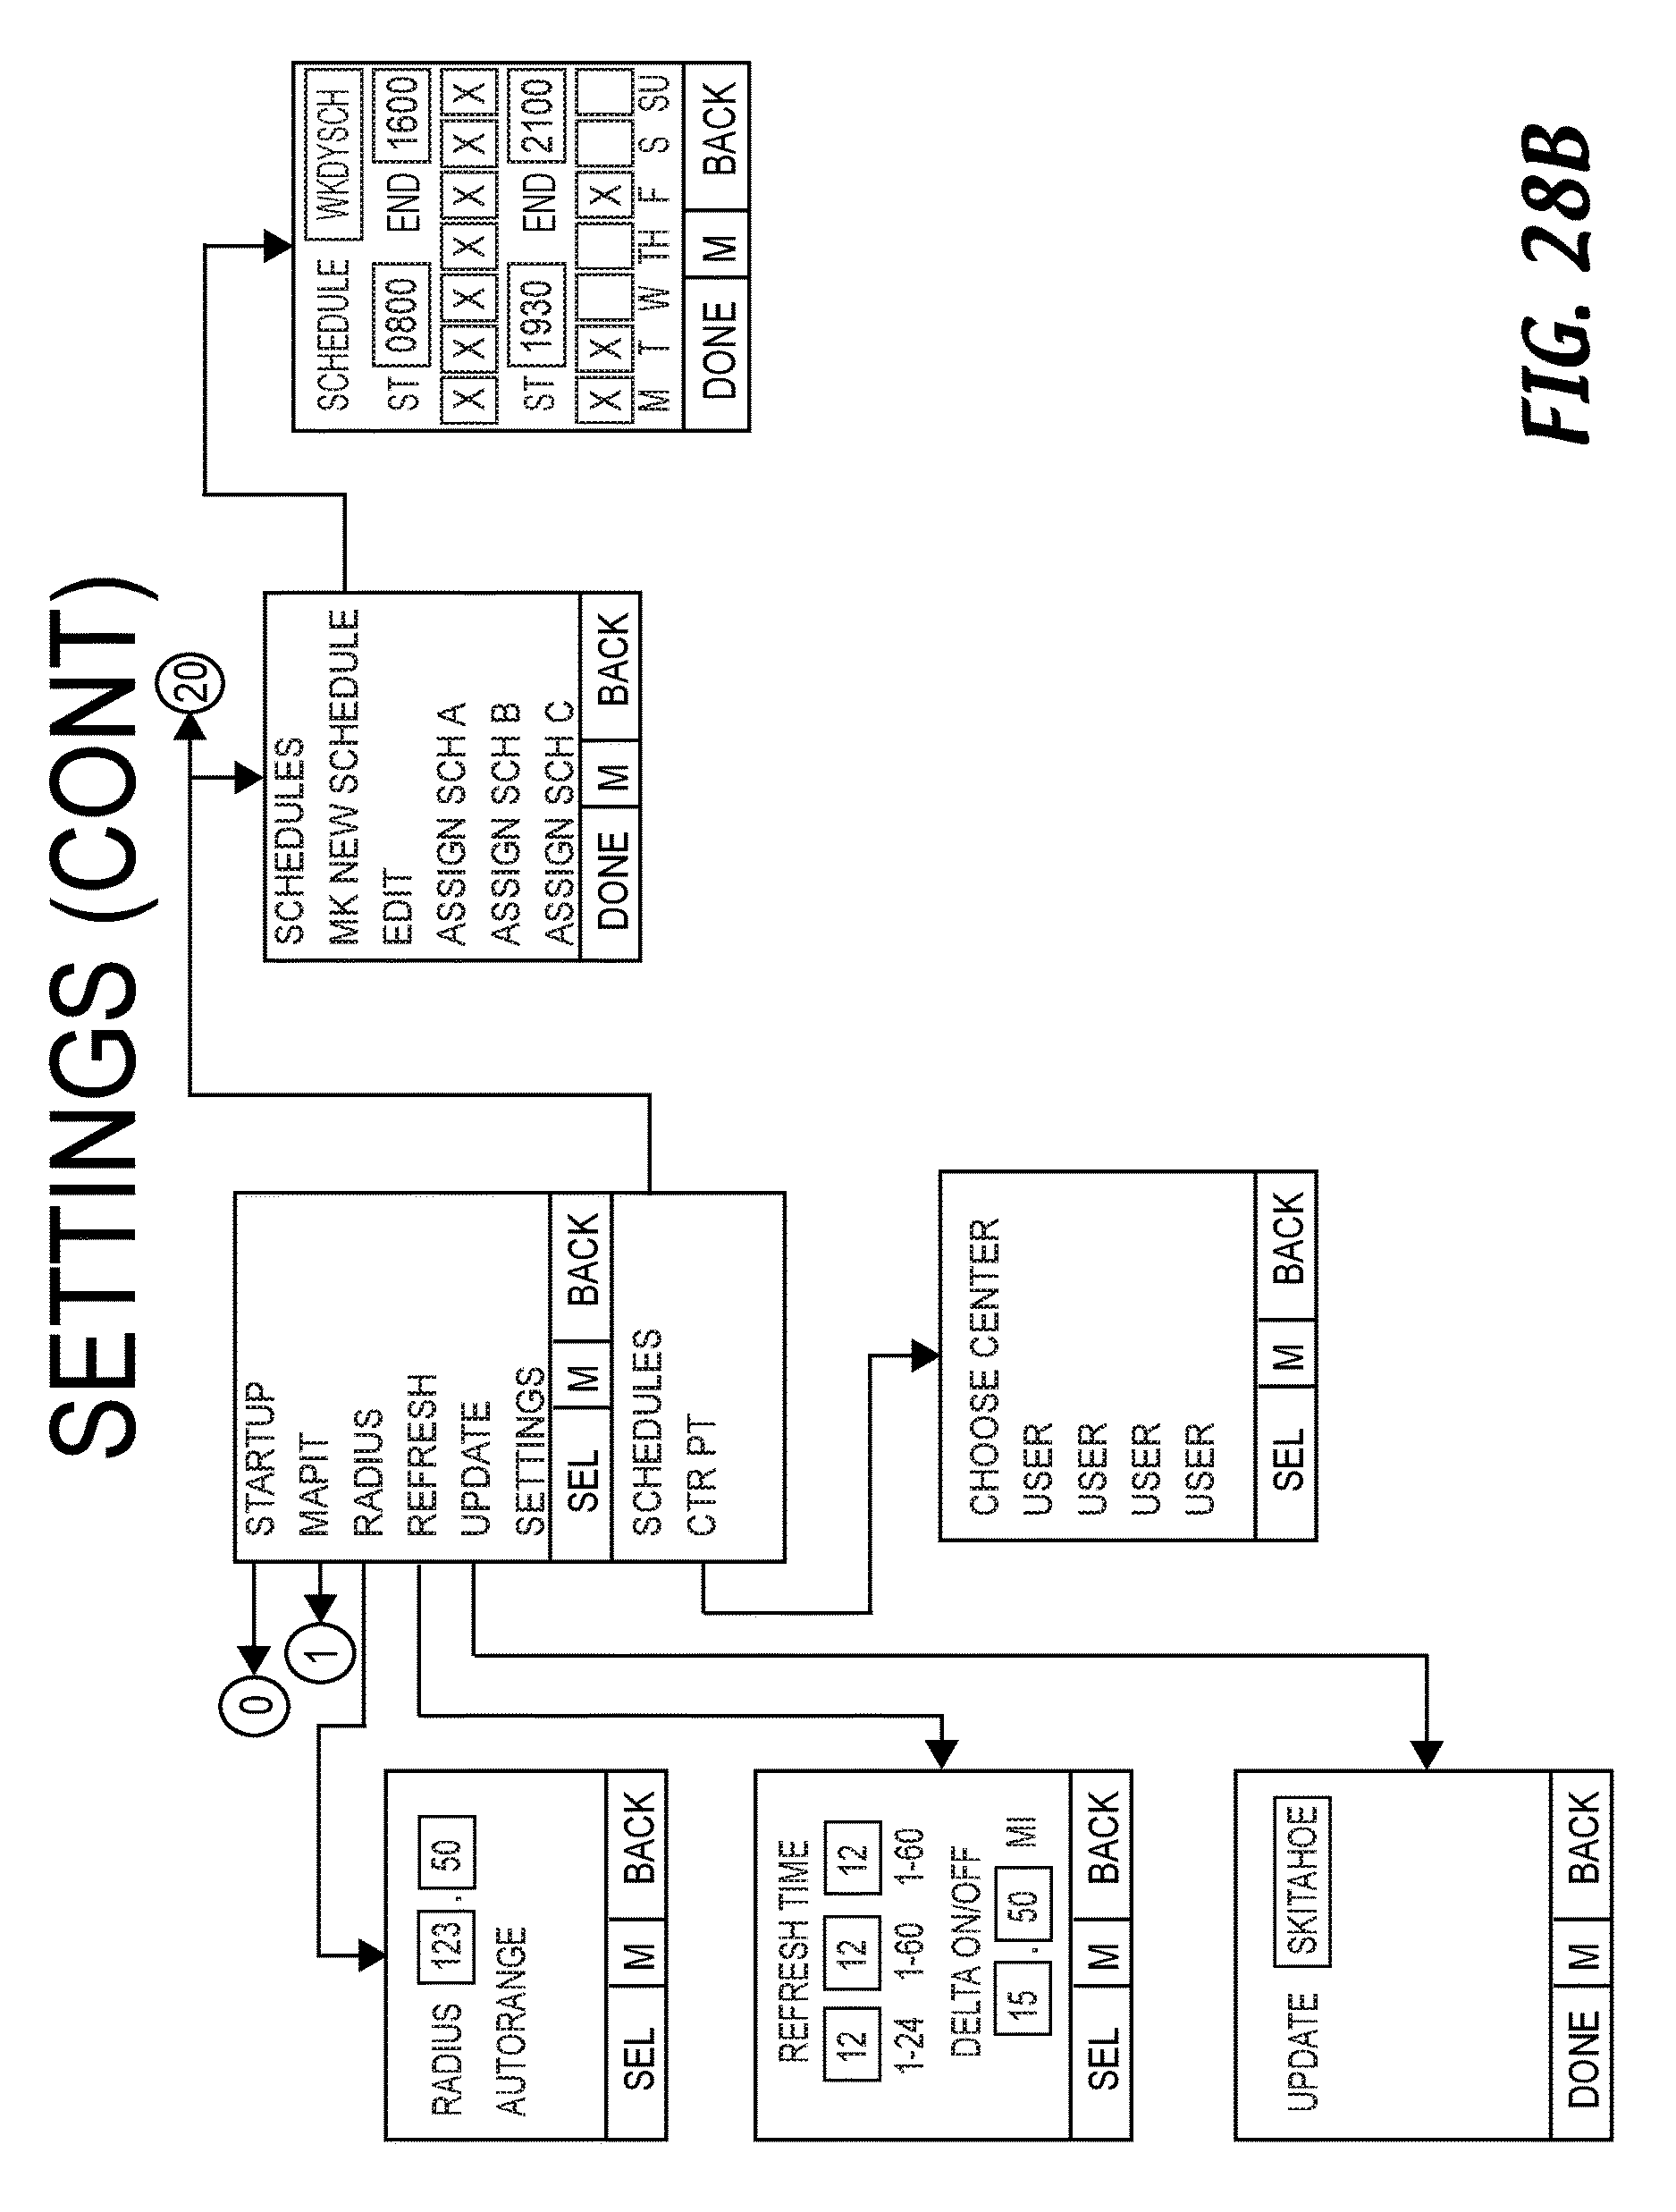 Us9654921b1 Techniques For Sharing Position Data Between First And Radiosparkscomschematics Indexoscillators11 2 2016 Second Devices Google Patents